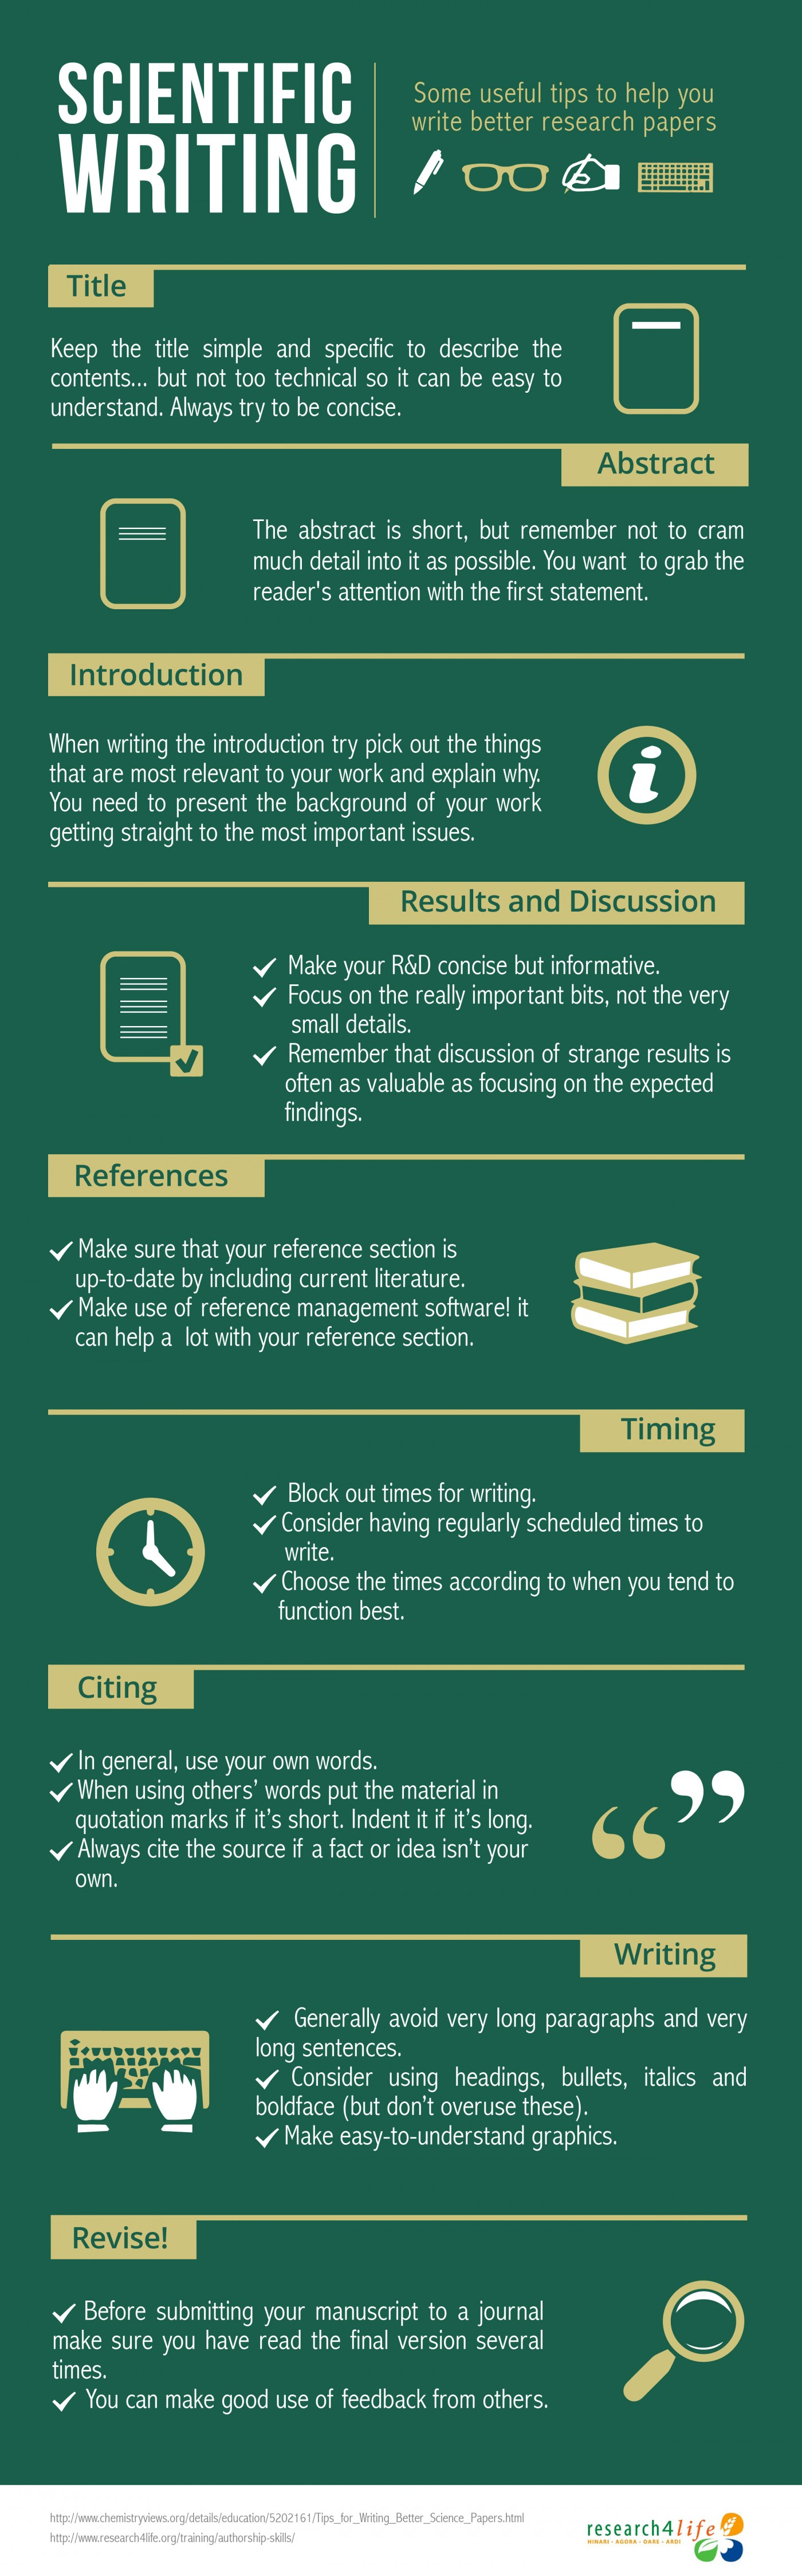 019 Research Paper Writing The Scientific Phenomenal Pdf How To Write A Outline Ppt Papers Complete Guide 16th Edition 1400